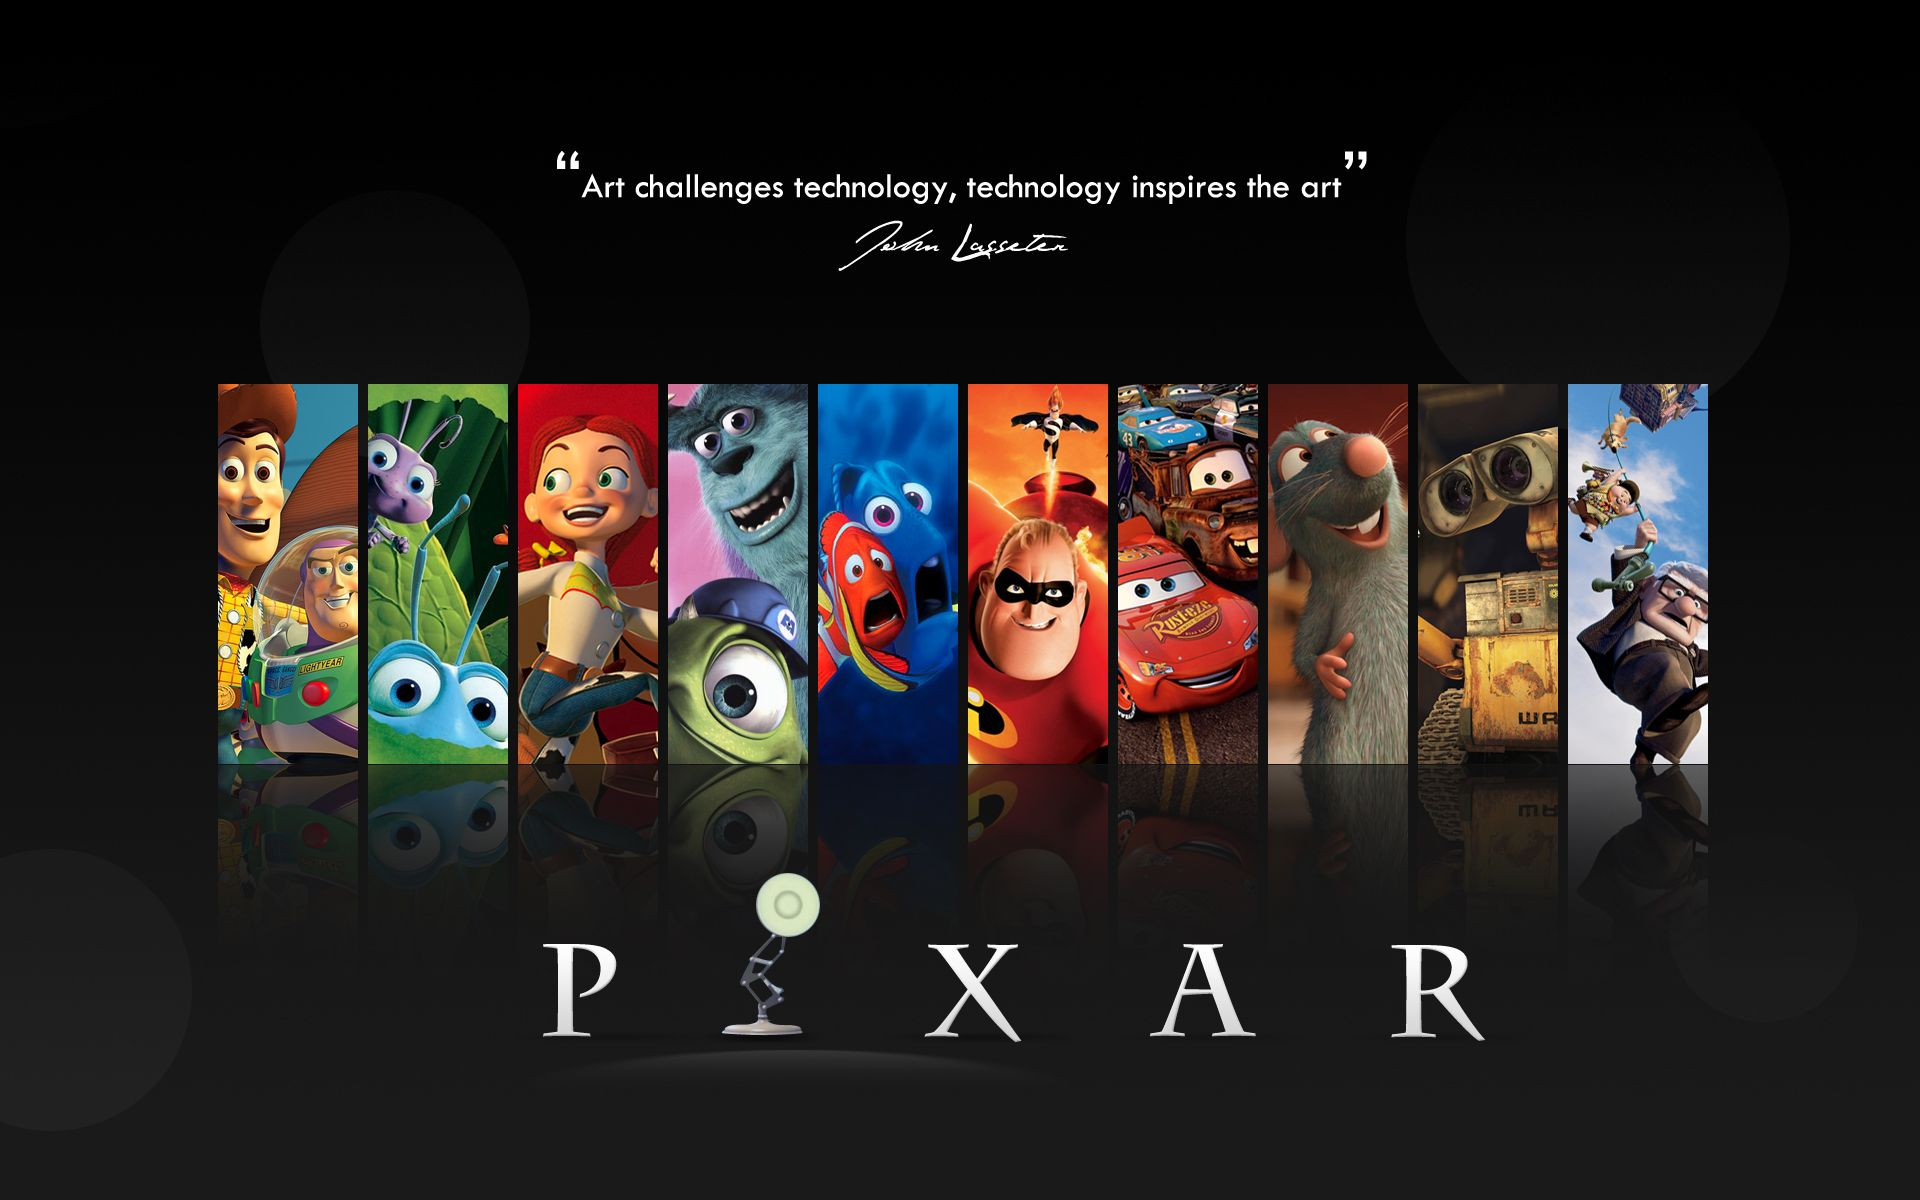 Pixar great wallpaper, great movies, lot's of creativity....